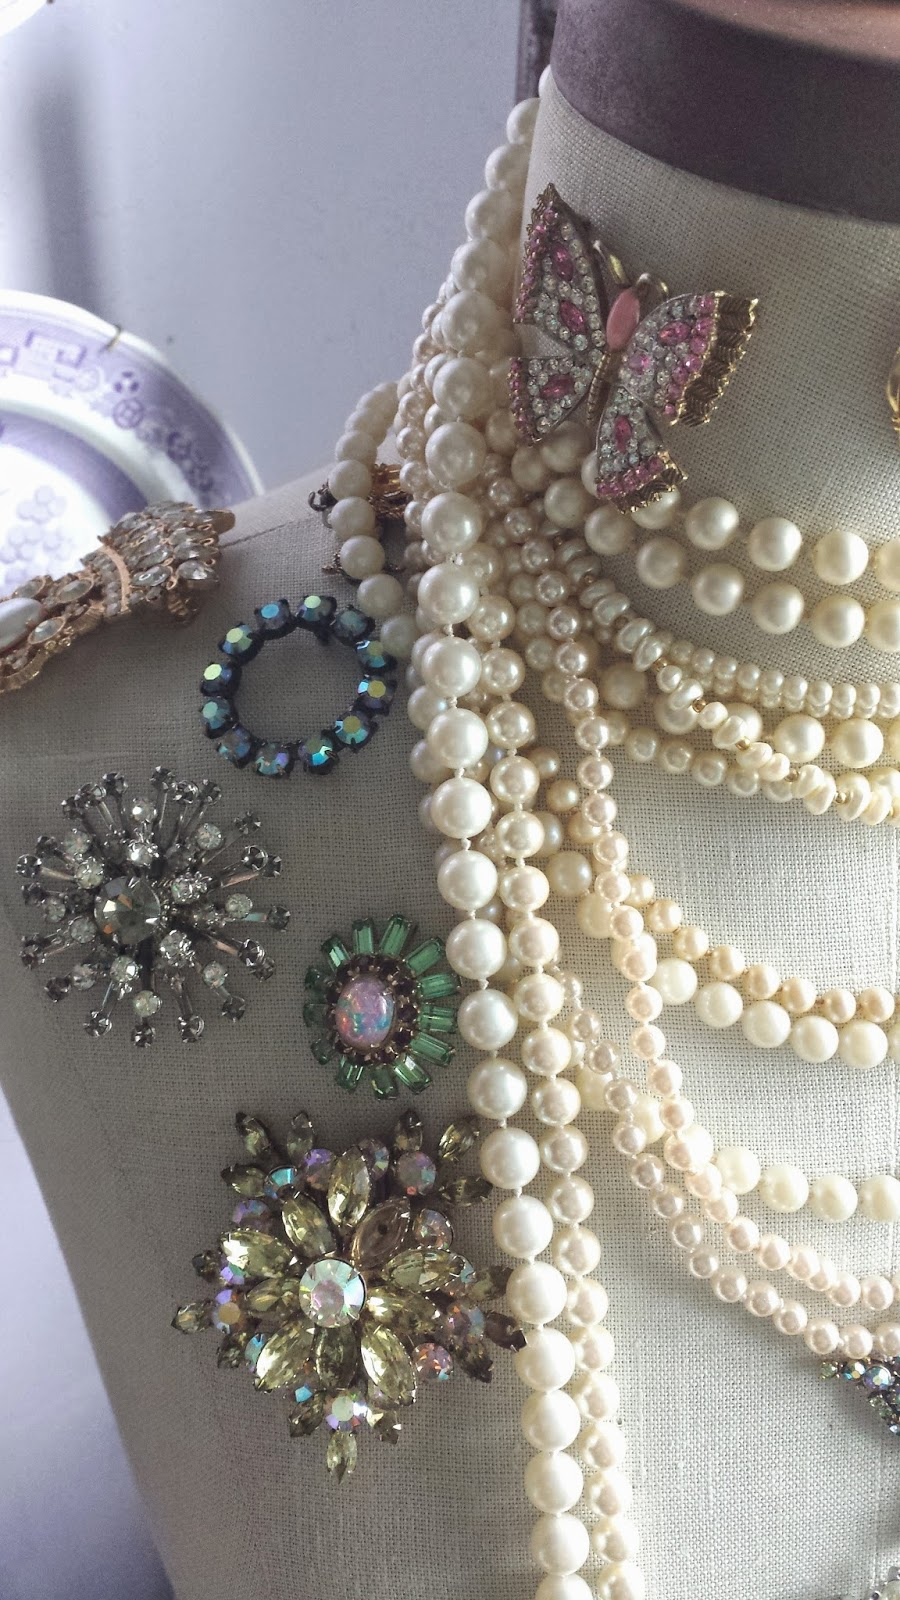 ciao! newport beach: vintage inspired jewelry display